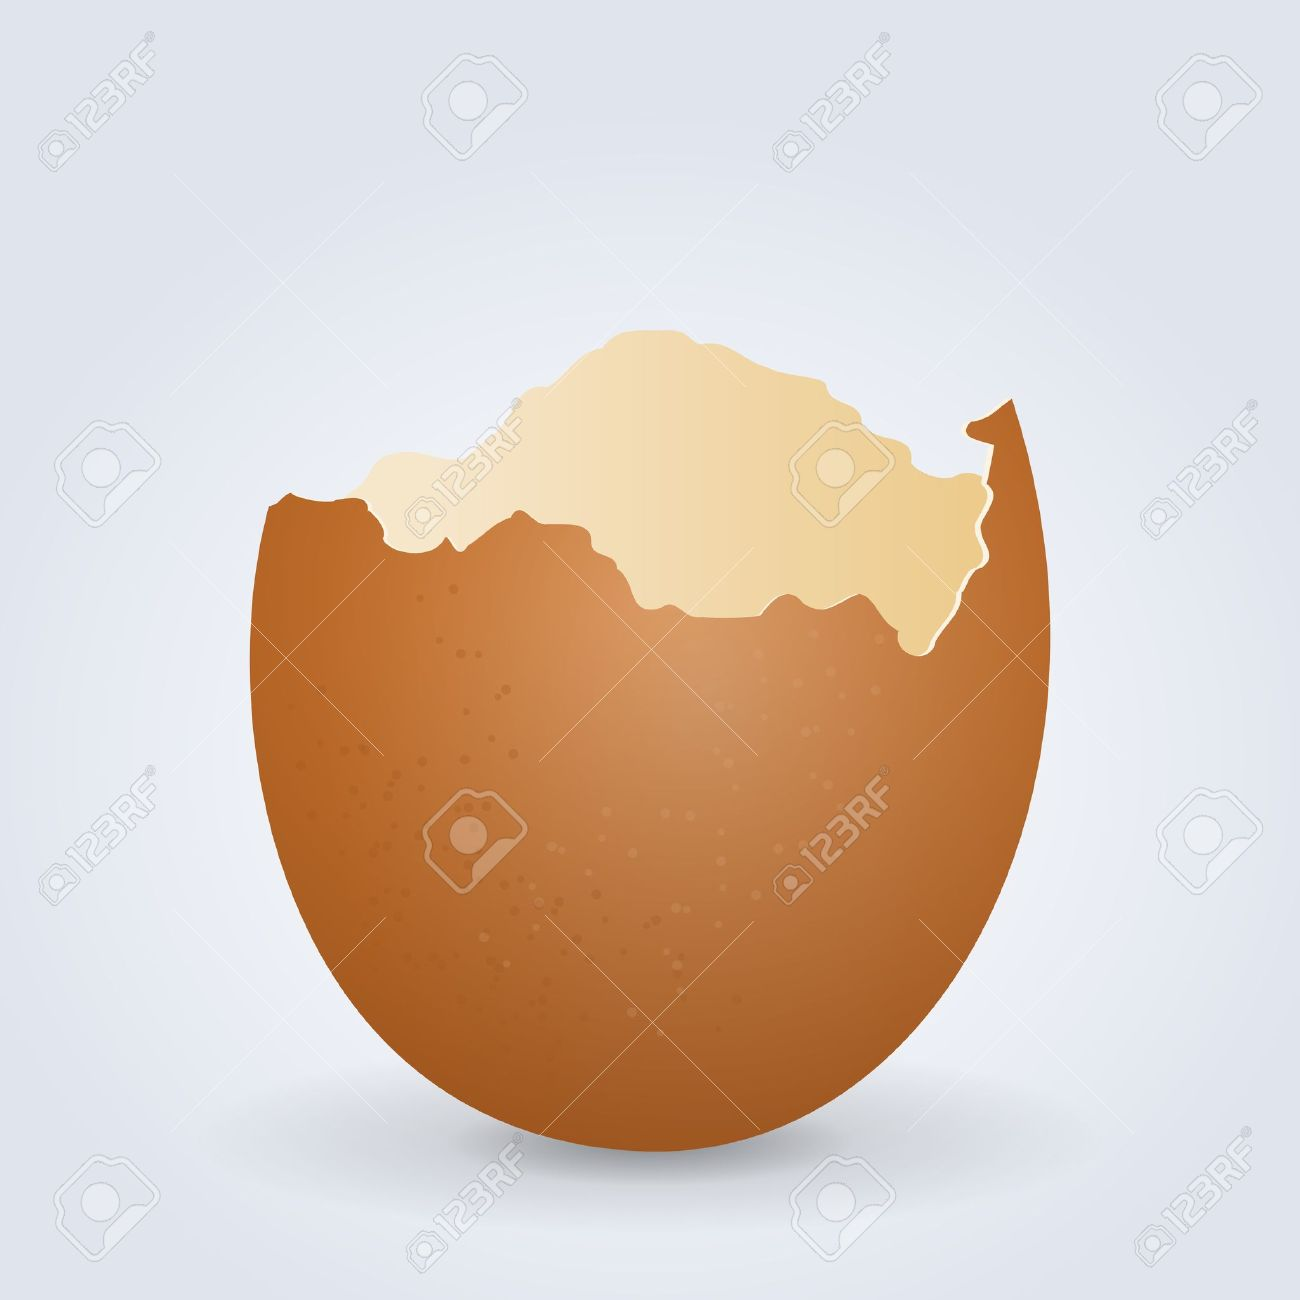 4,102 Eggshell Stock Vector Illustration And Royalty Free Eggshell.